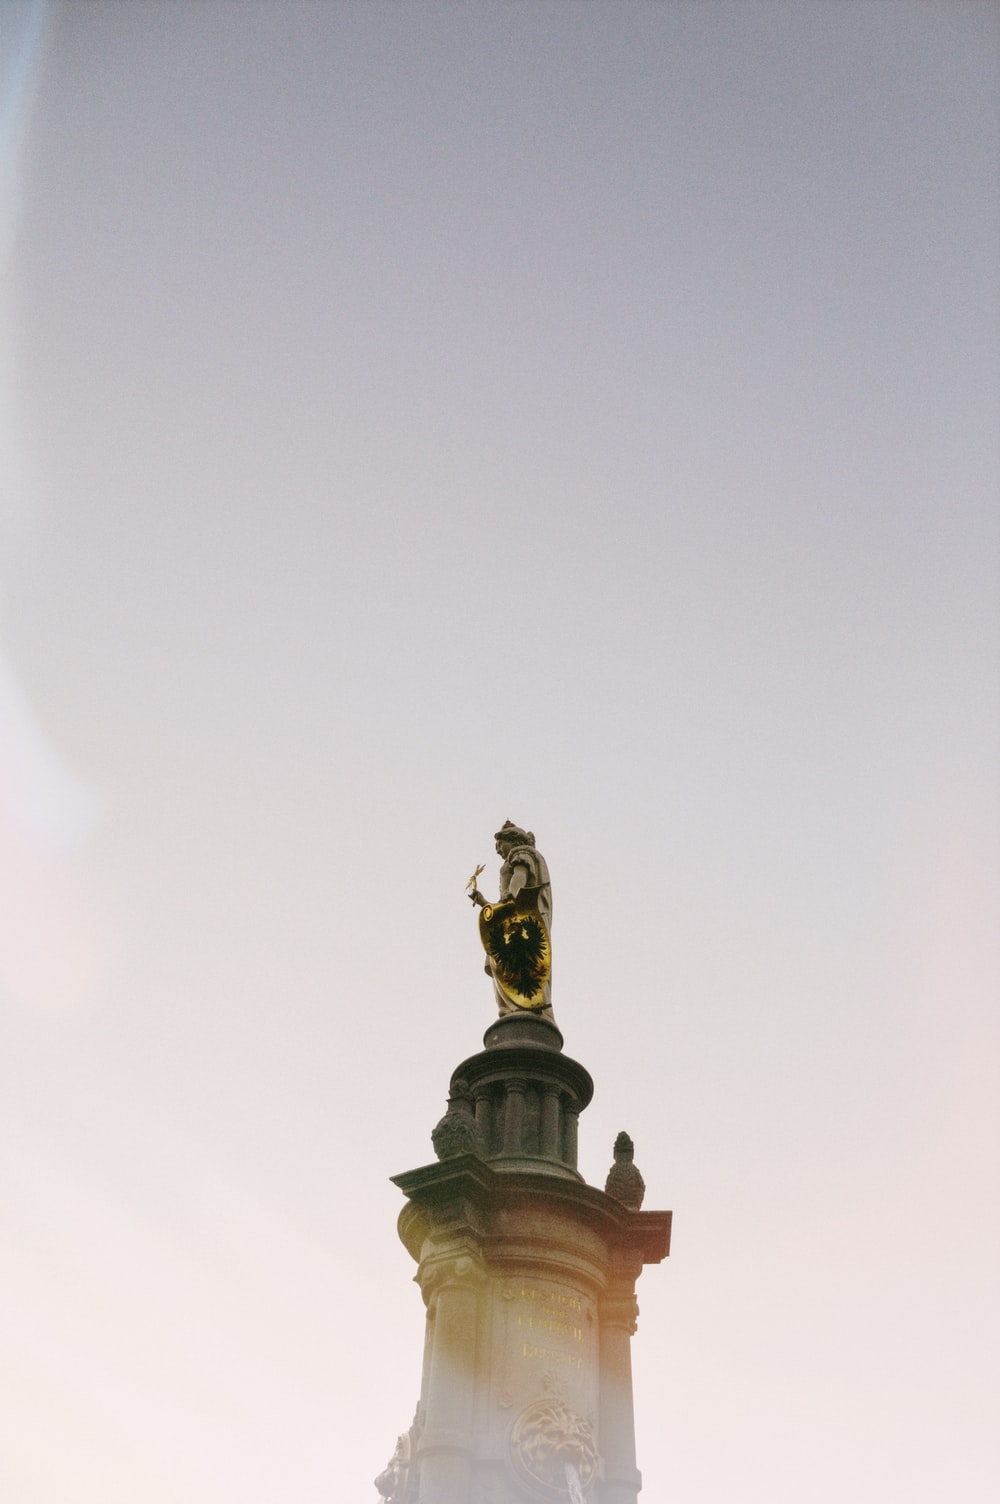 gold statue under white sky during daytime